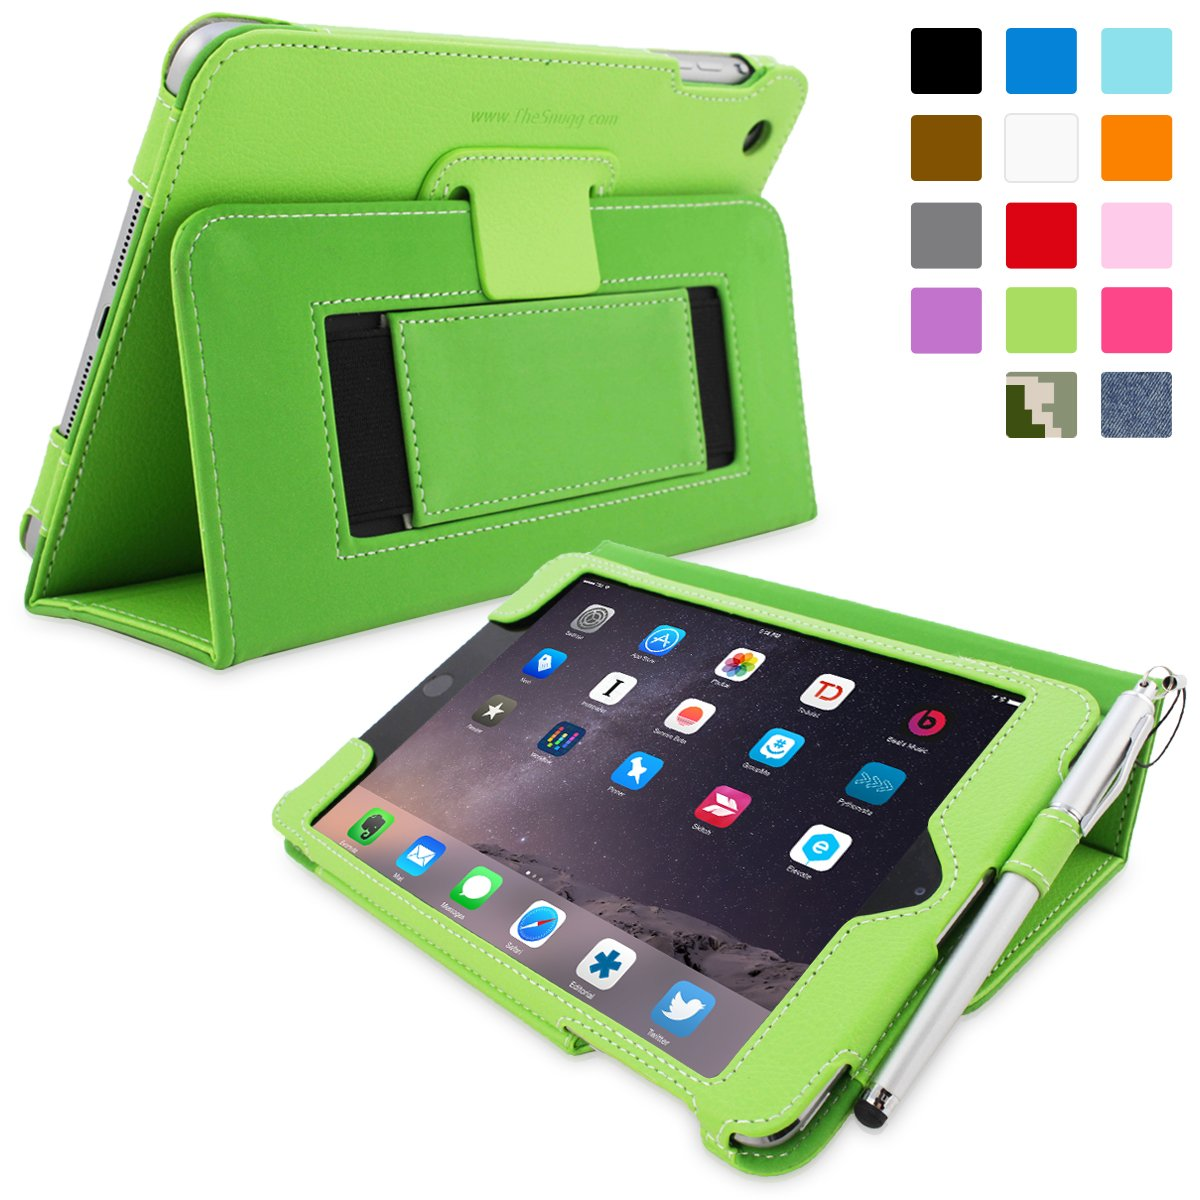 Snugg™ iPad Mini 3 Case   Smart Cover with Flipreview and more information